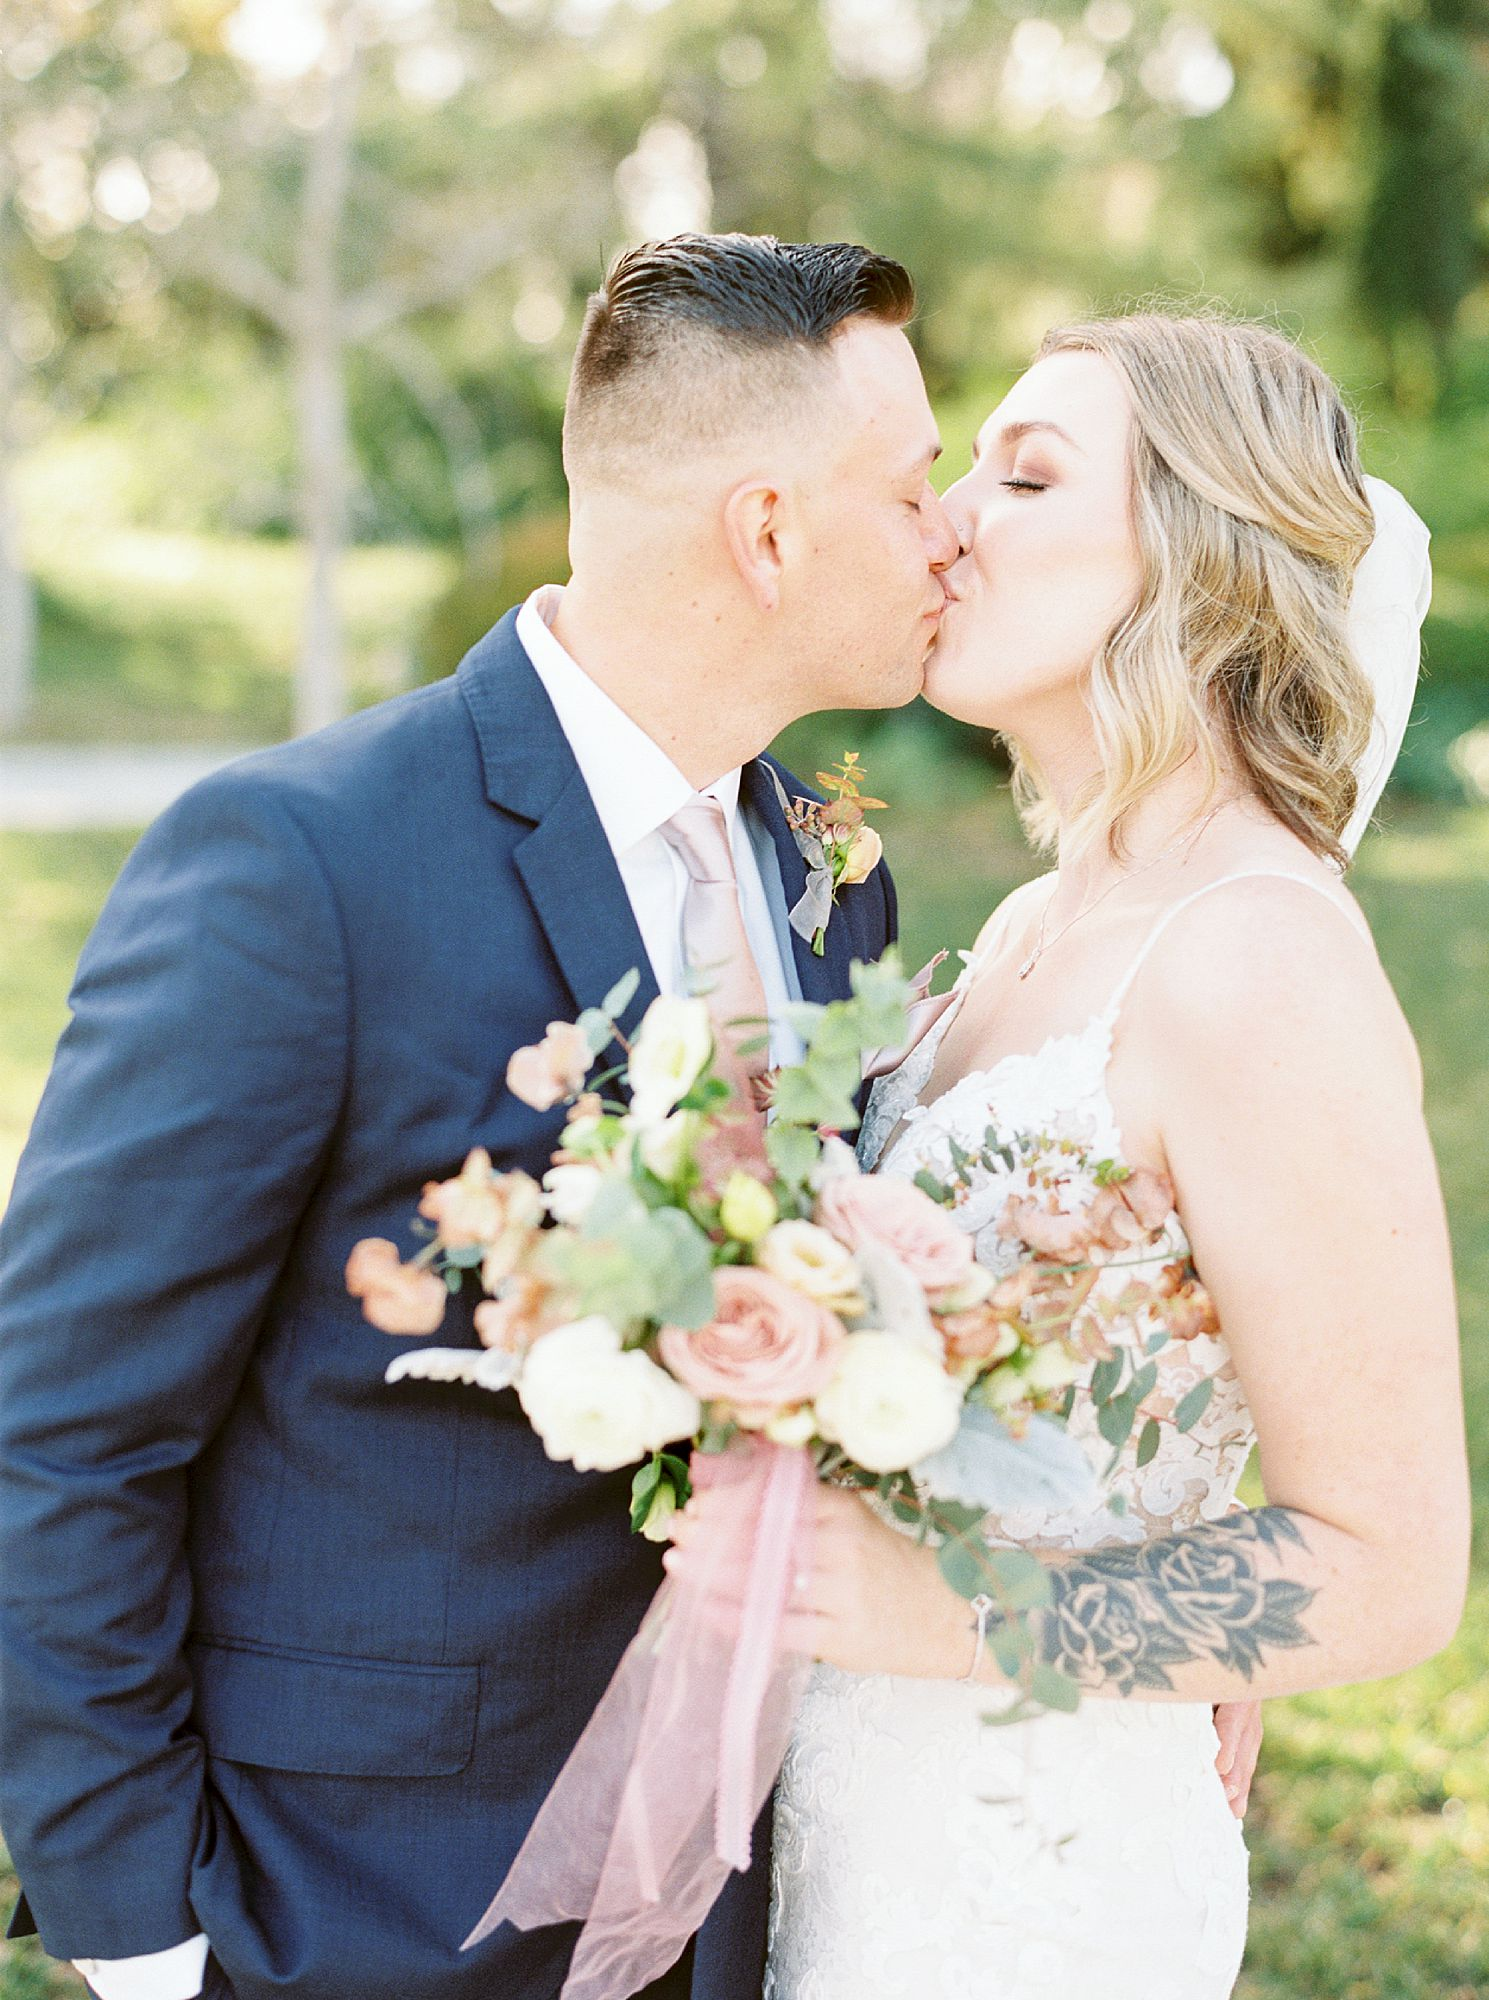 Inn at Park Winters Wedding - Lindsay and Shane - Ashley Baumgartner - Park Winters Wedding Photographer - Sacramento Wedding Photographer_0026.jpg